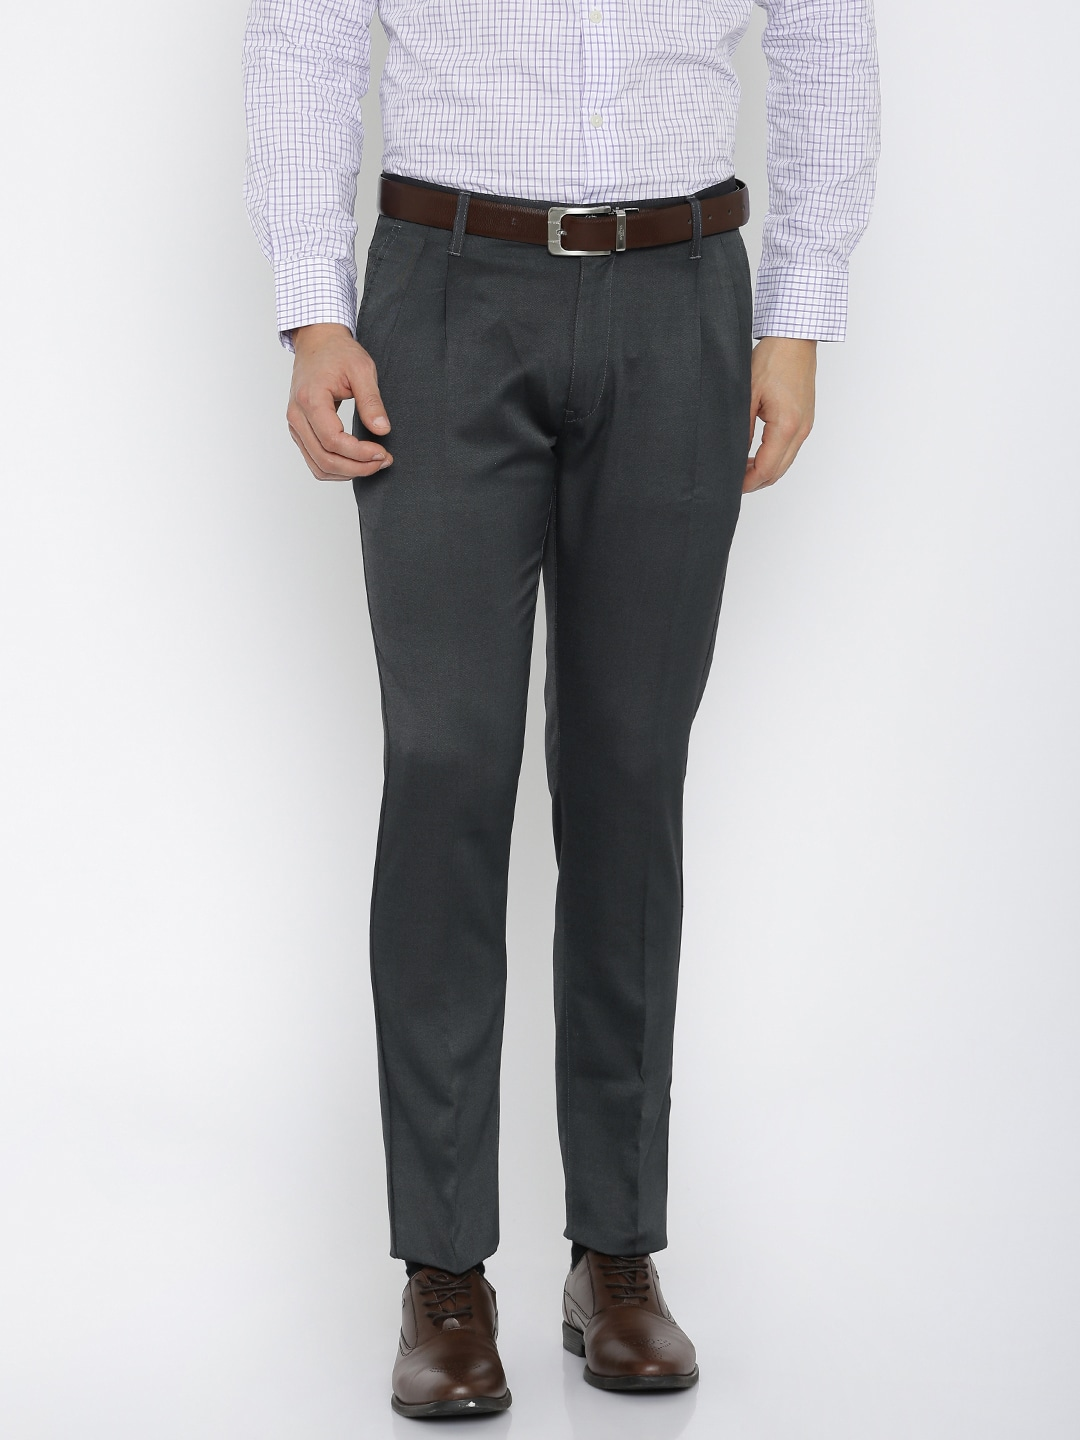 447fc75400ca7 Men Formal Trousers